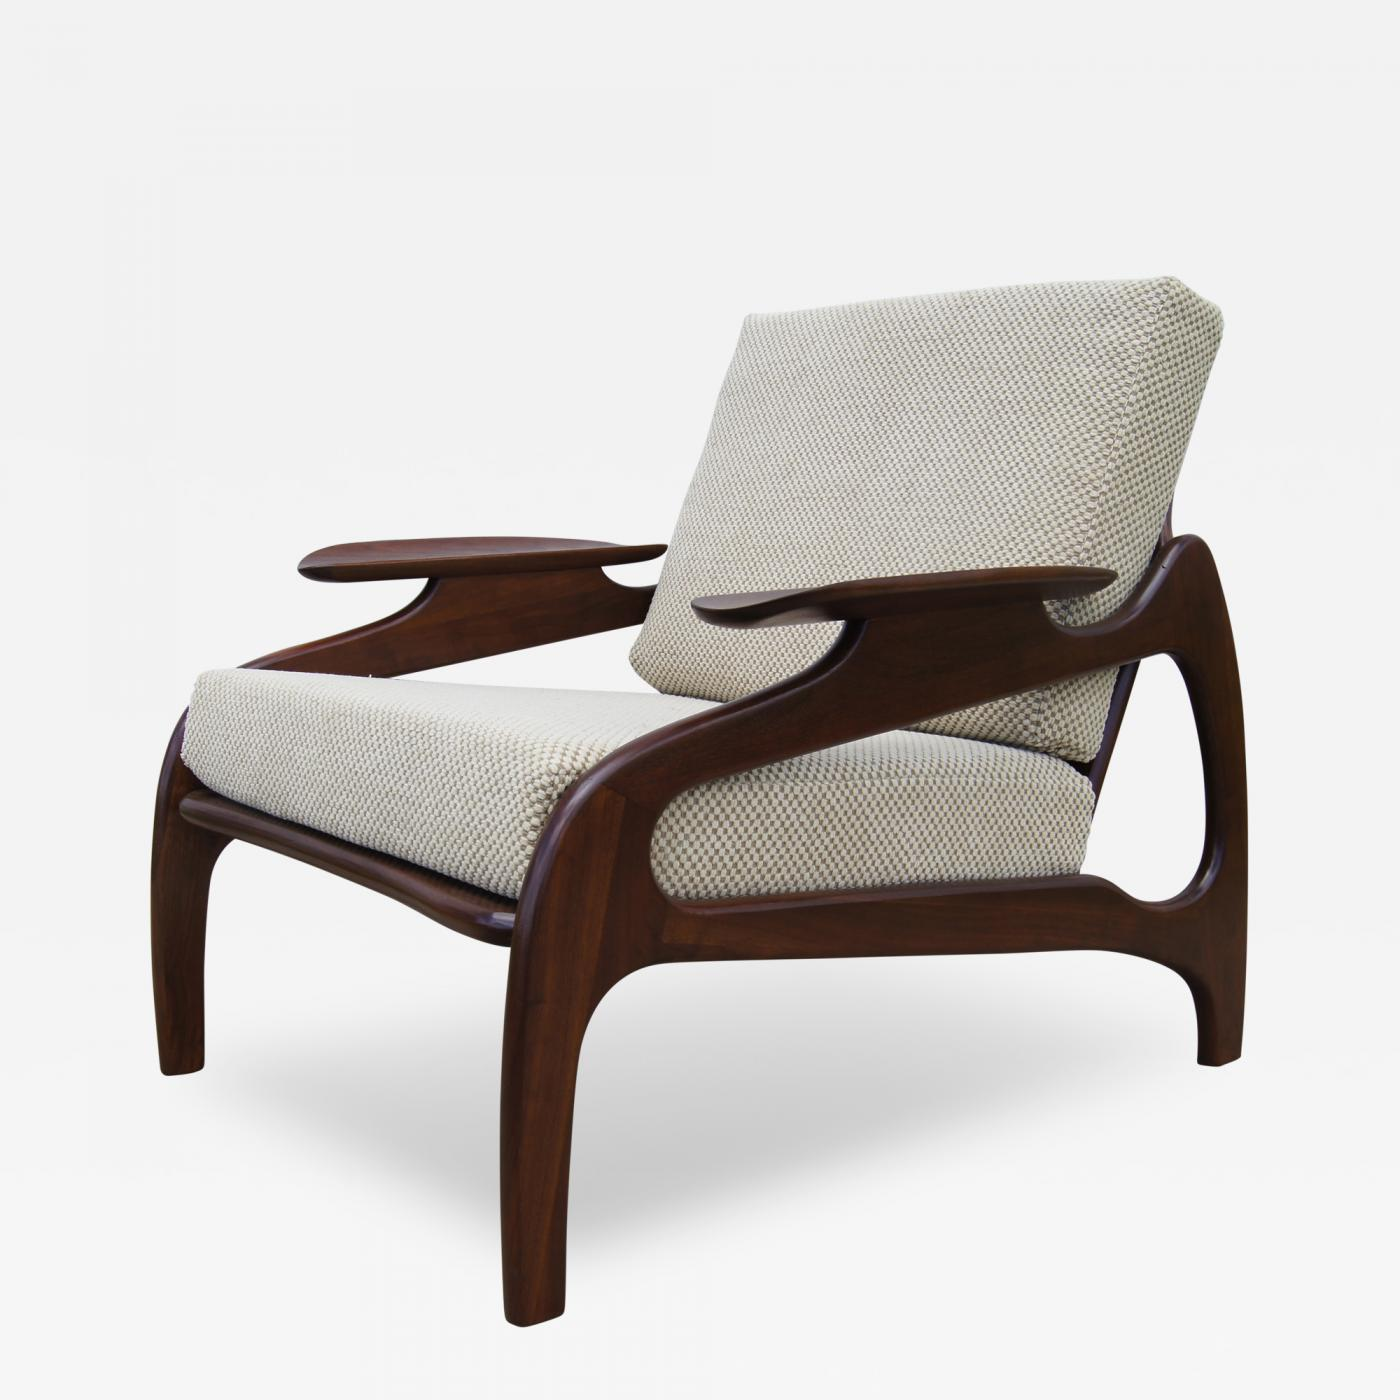 adrian pearsall lounge chair ameriglide lift chairs model 1209c walnut by for craft associates